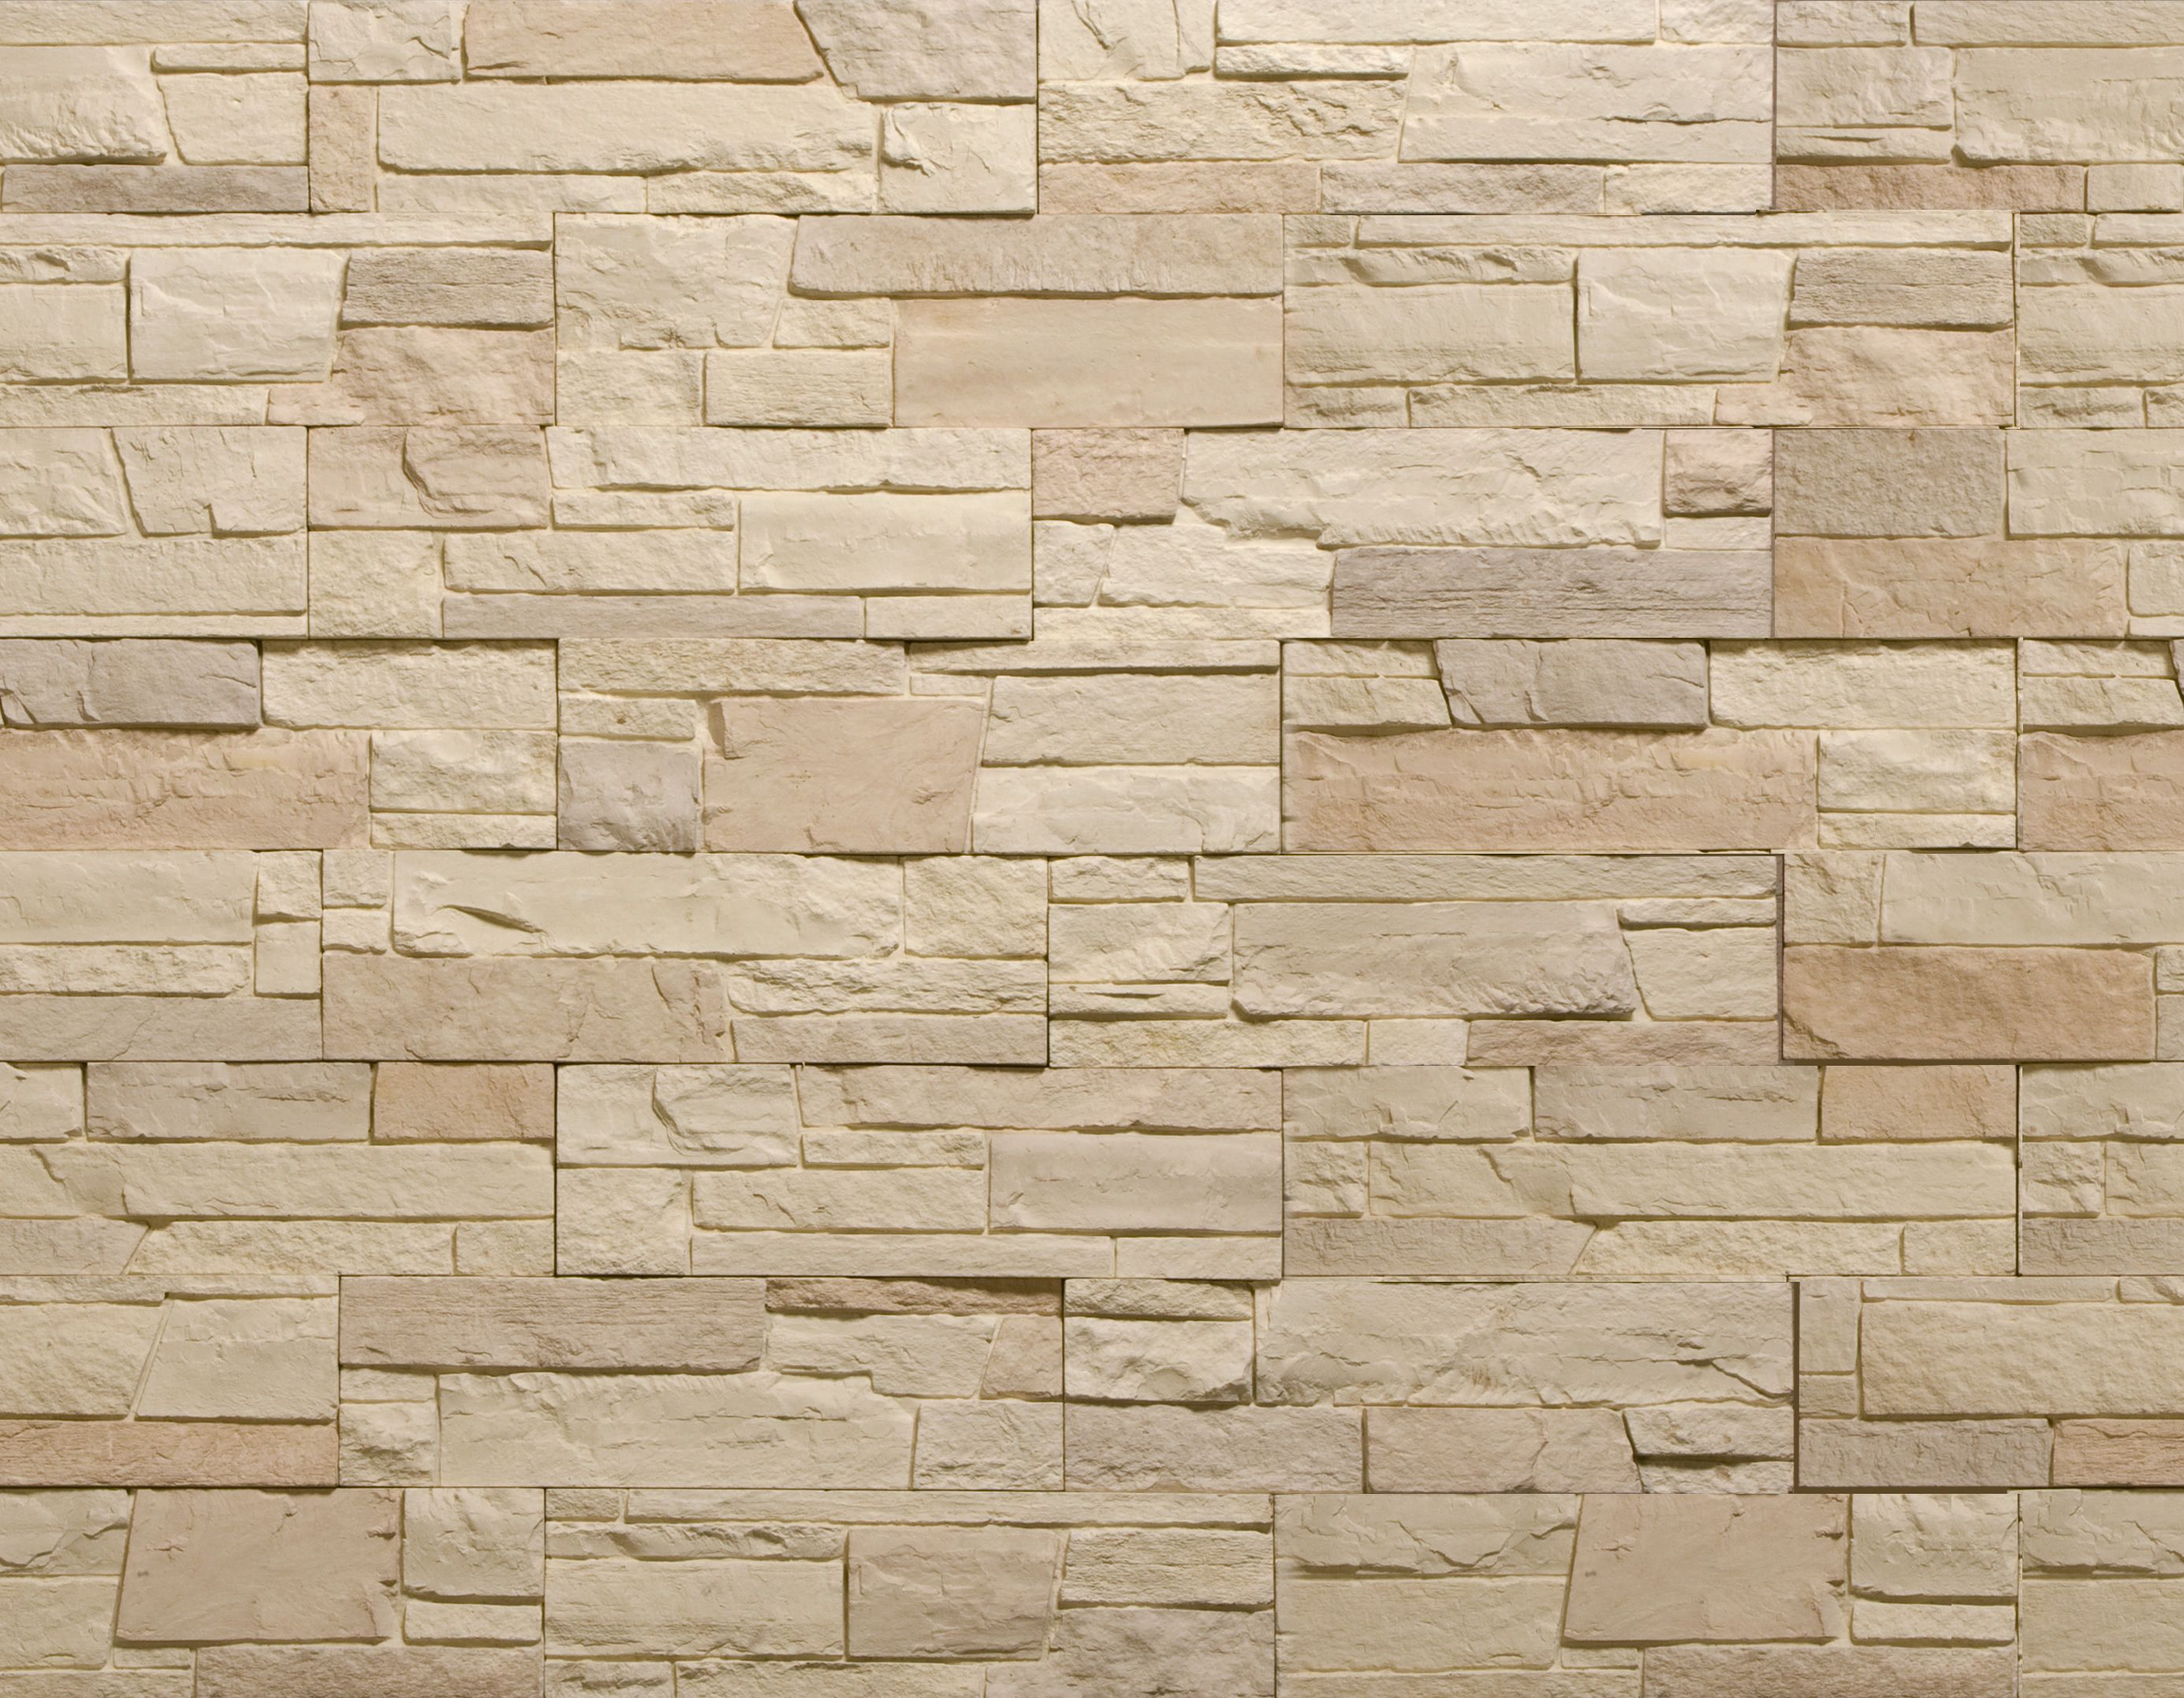 Stone Backgrounde Wall Stone Wall Download Photo Tiles Texture Stone Wall Stone Walls Interior